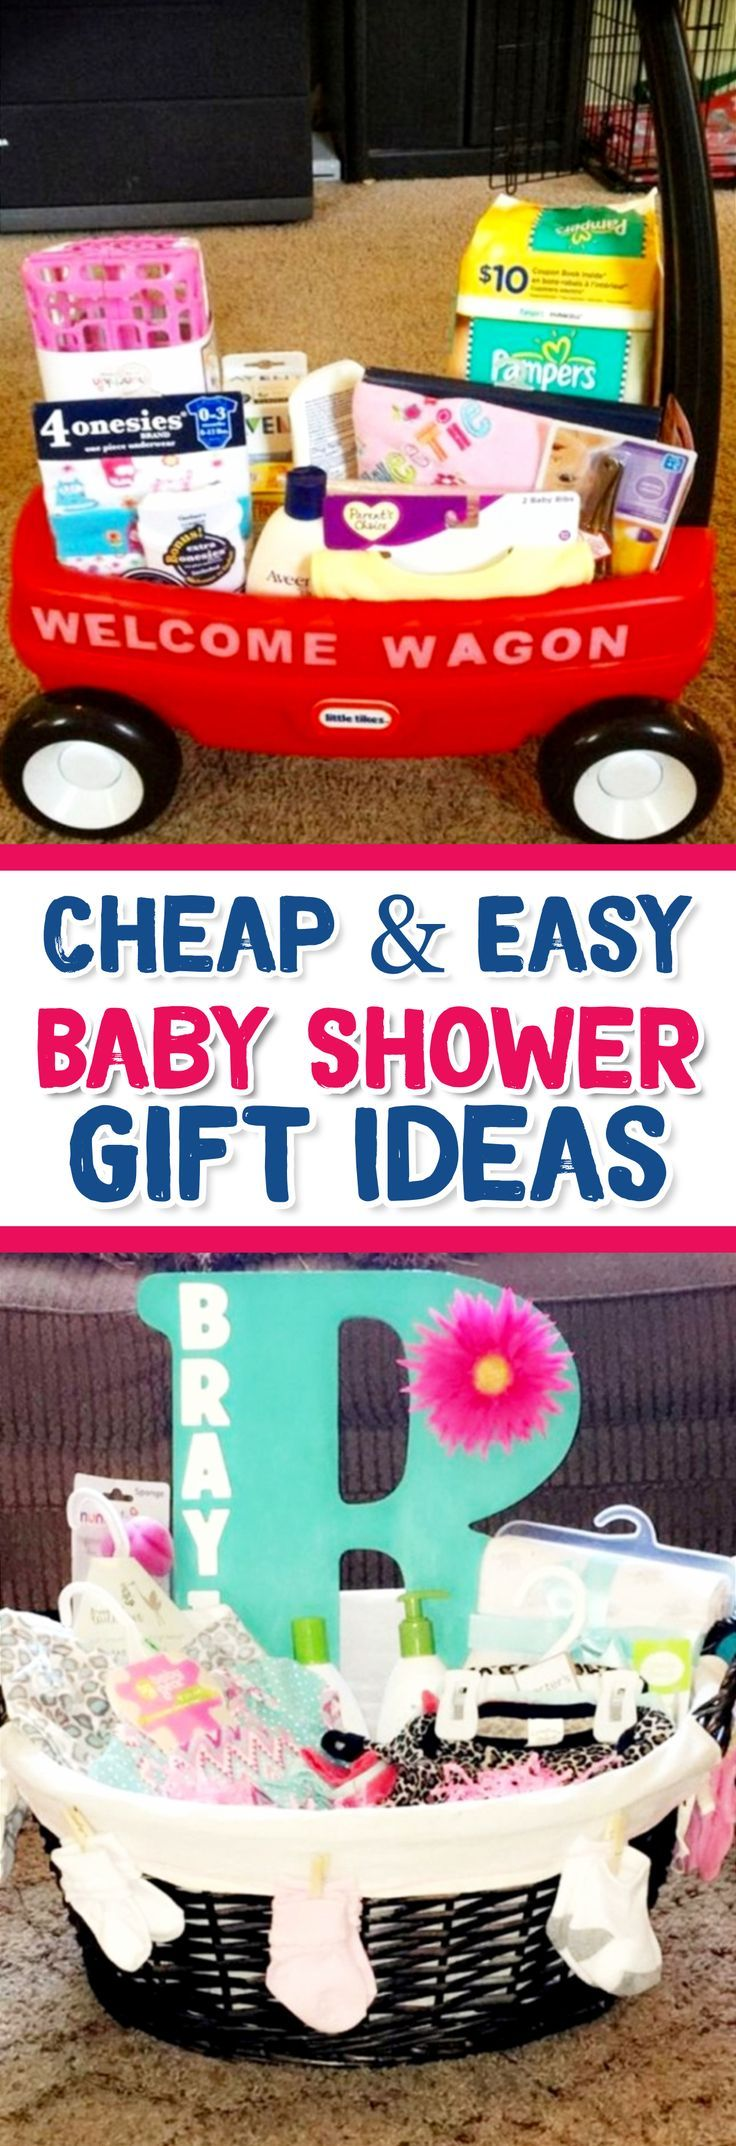 Best 25+ Cheap baby shower decorations ideas on Pinterest